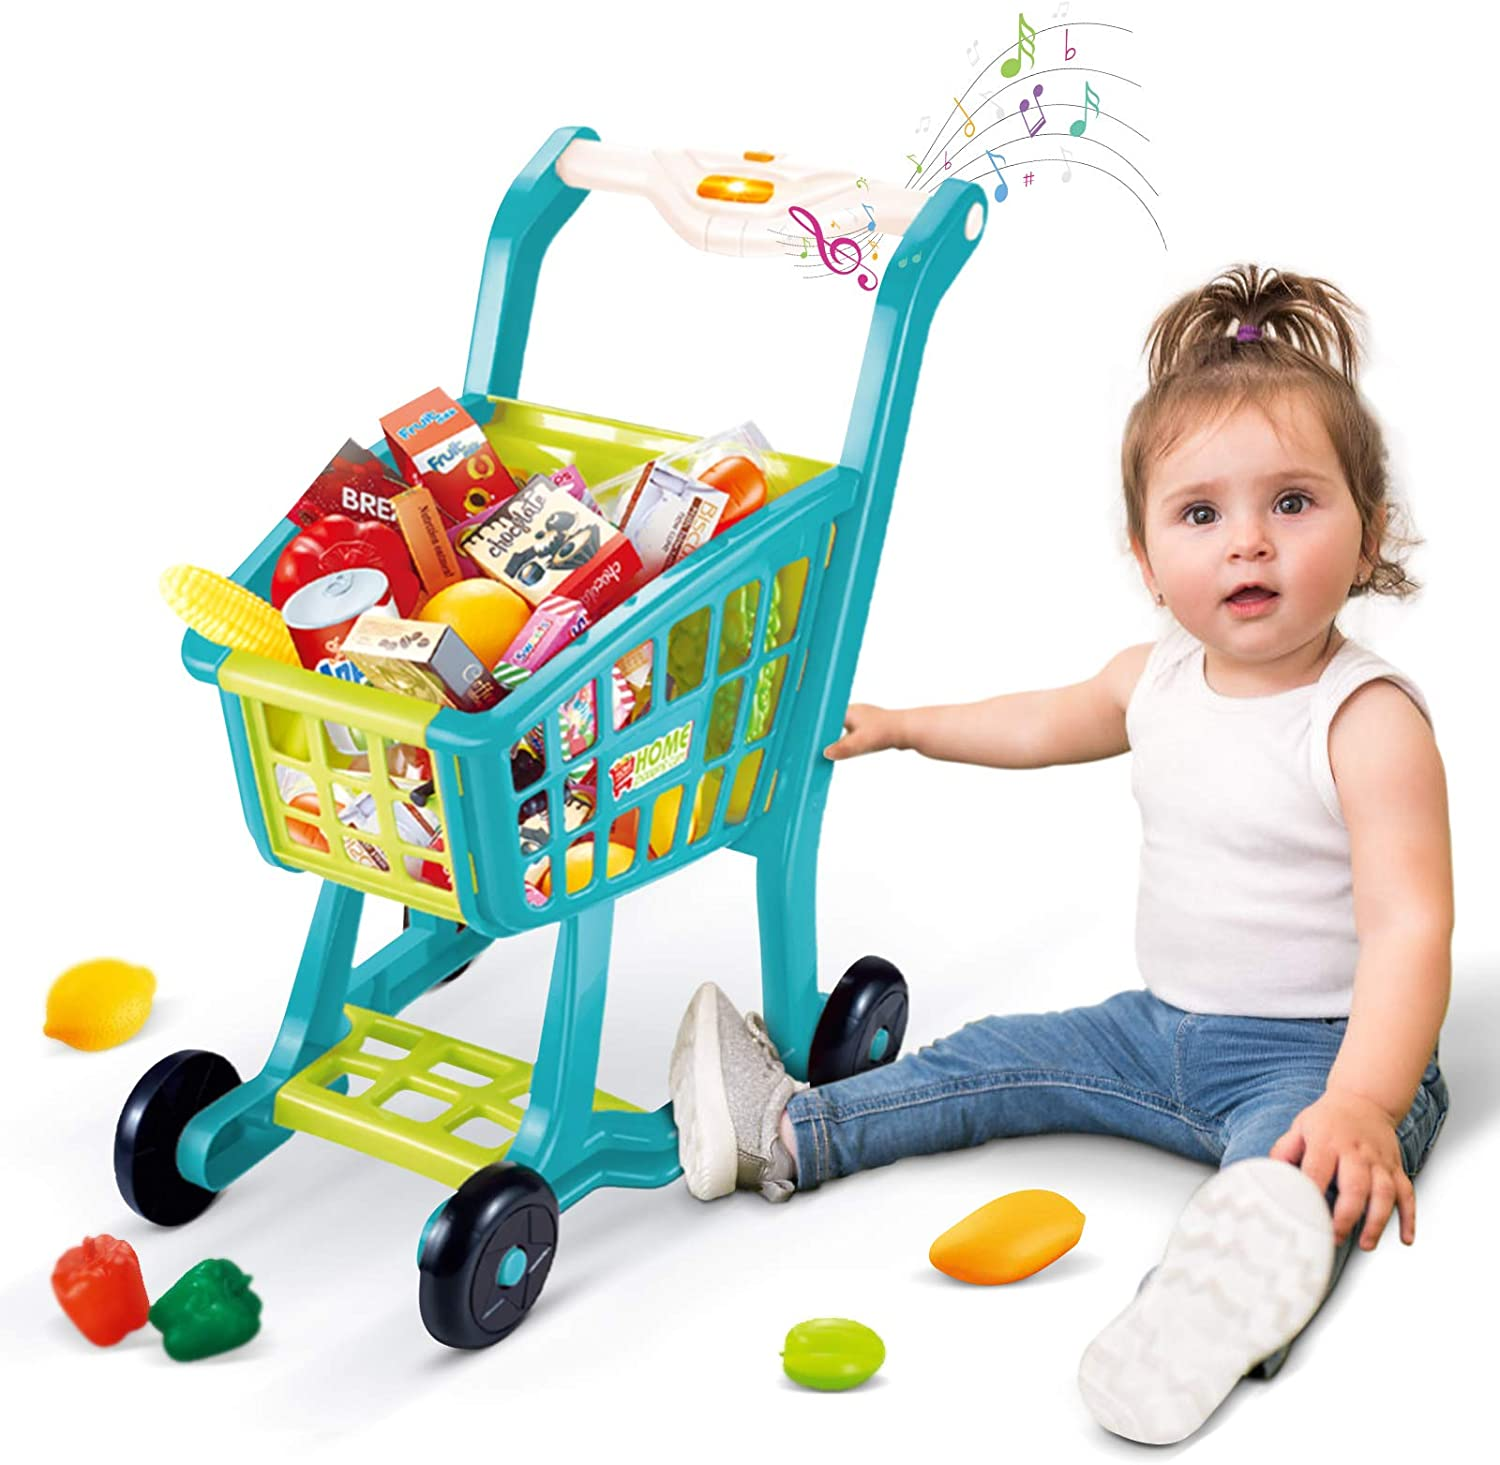 KALKOAOLY Kids Toy Shopping Carts, Portable Pretend Cart with Groceries, Toddlers Cart Toy Includes 27 Pieces Fruits and Vegetables, Supermarket Shopping Cart Play House Trolley(Blue)